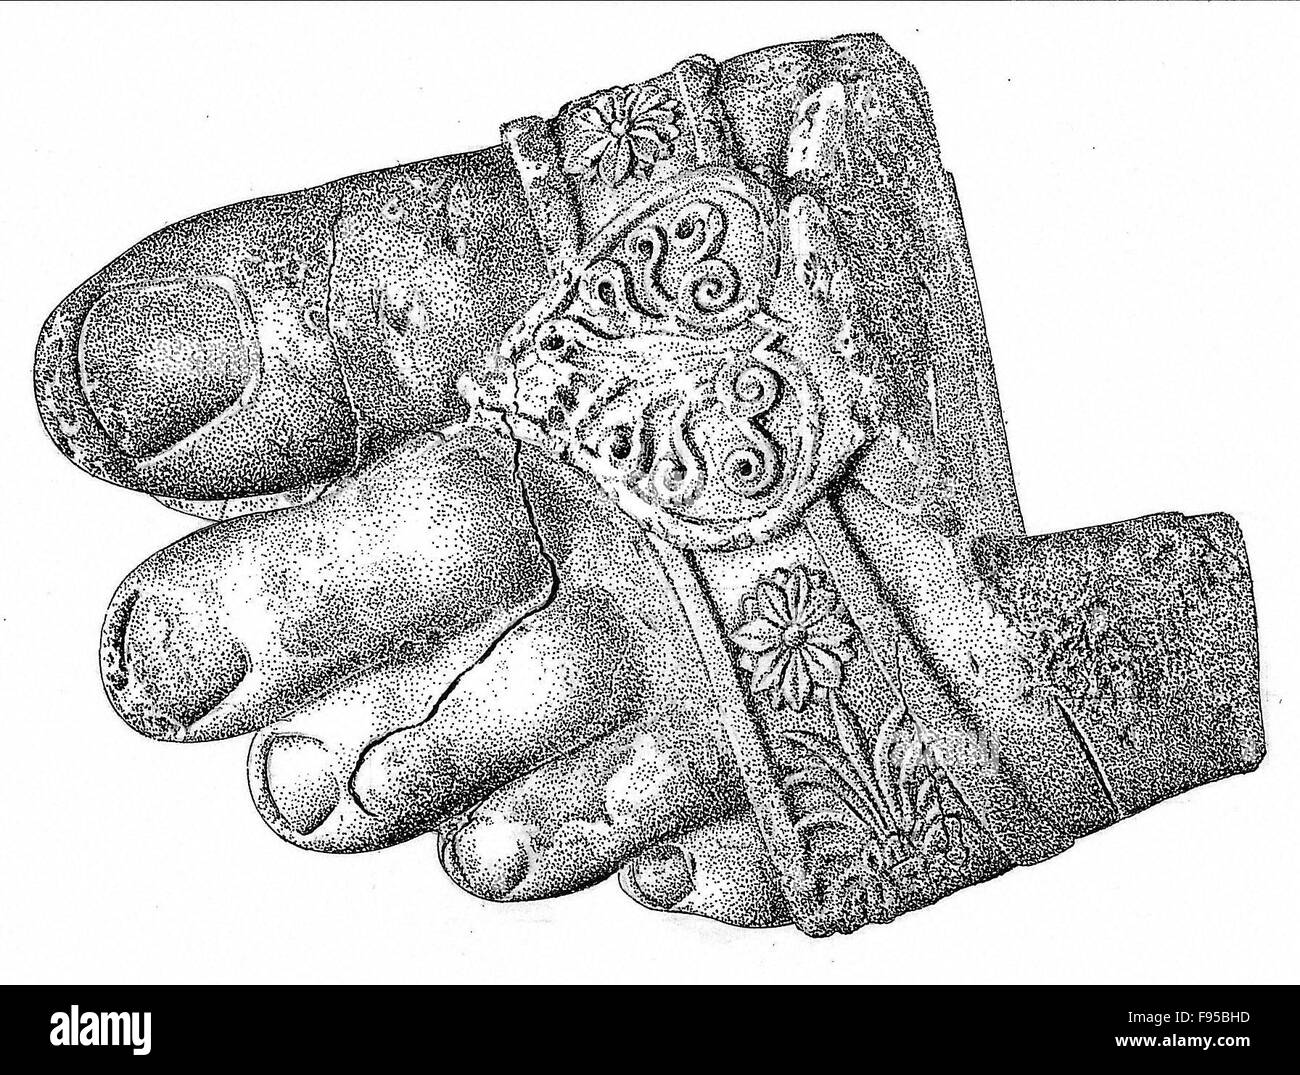 The foot of a colossal male statue. - Stock Image